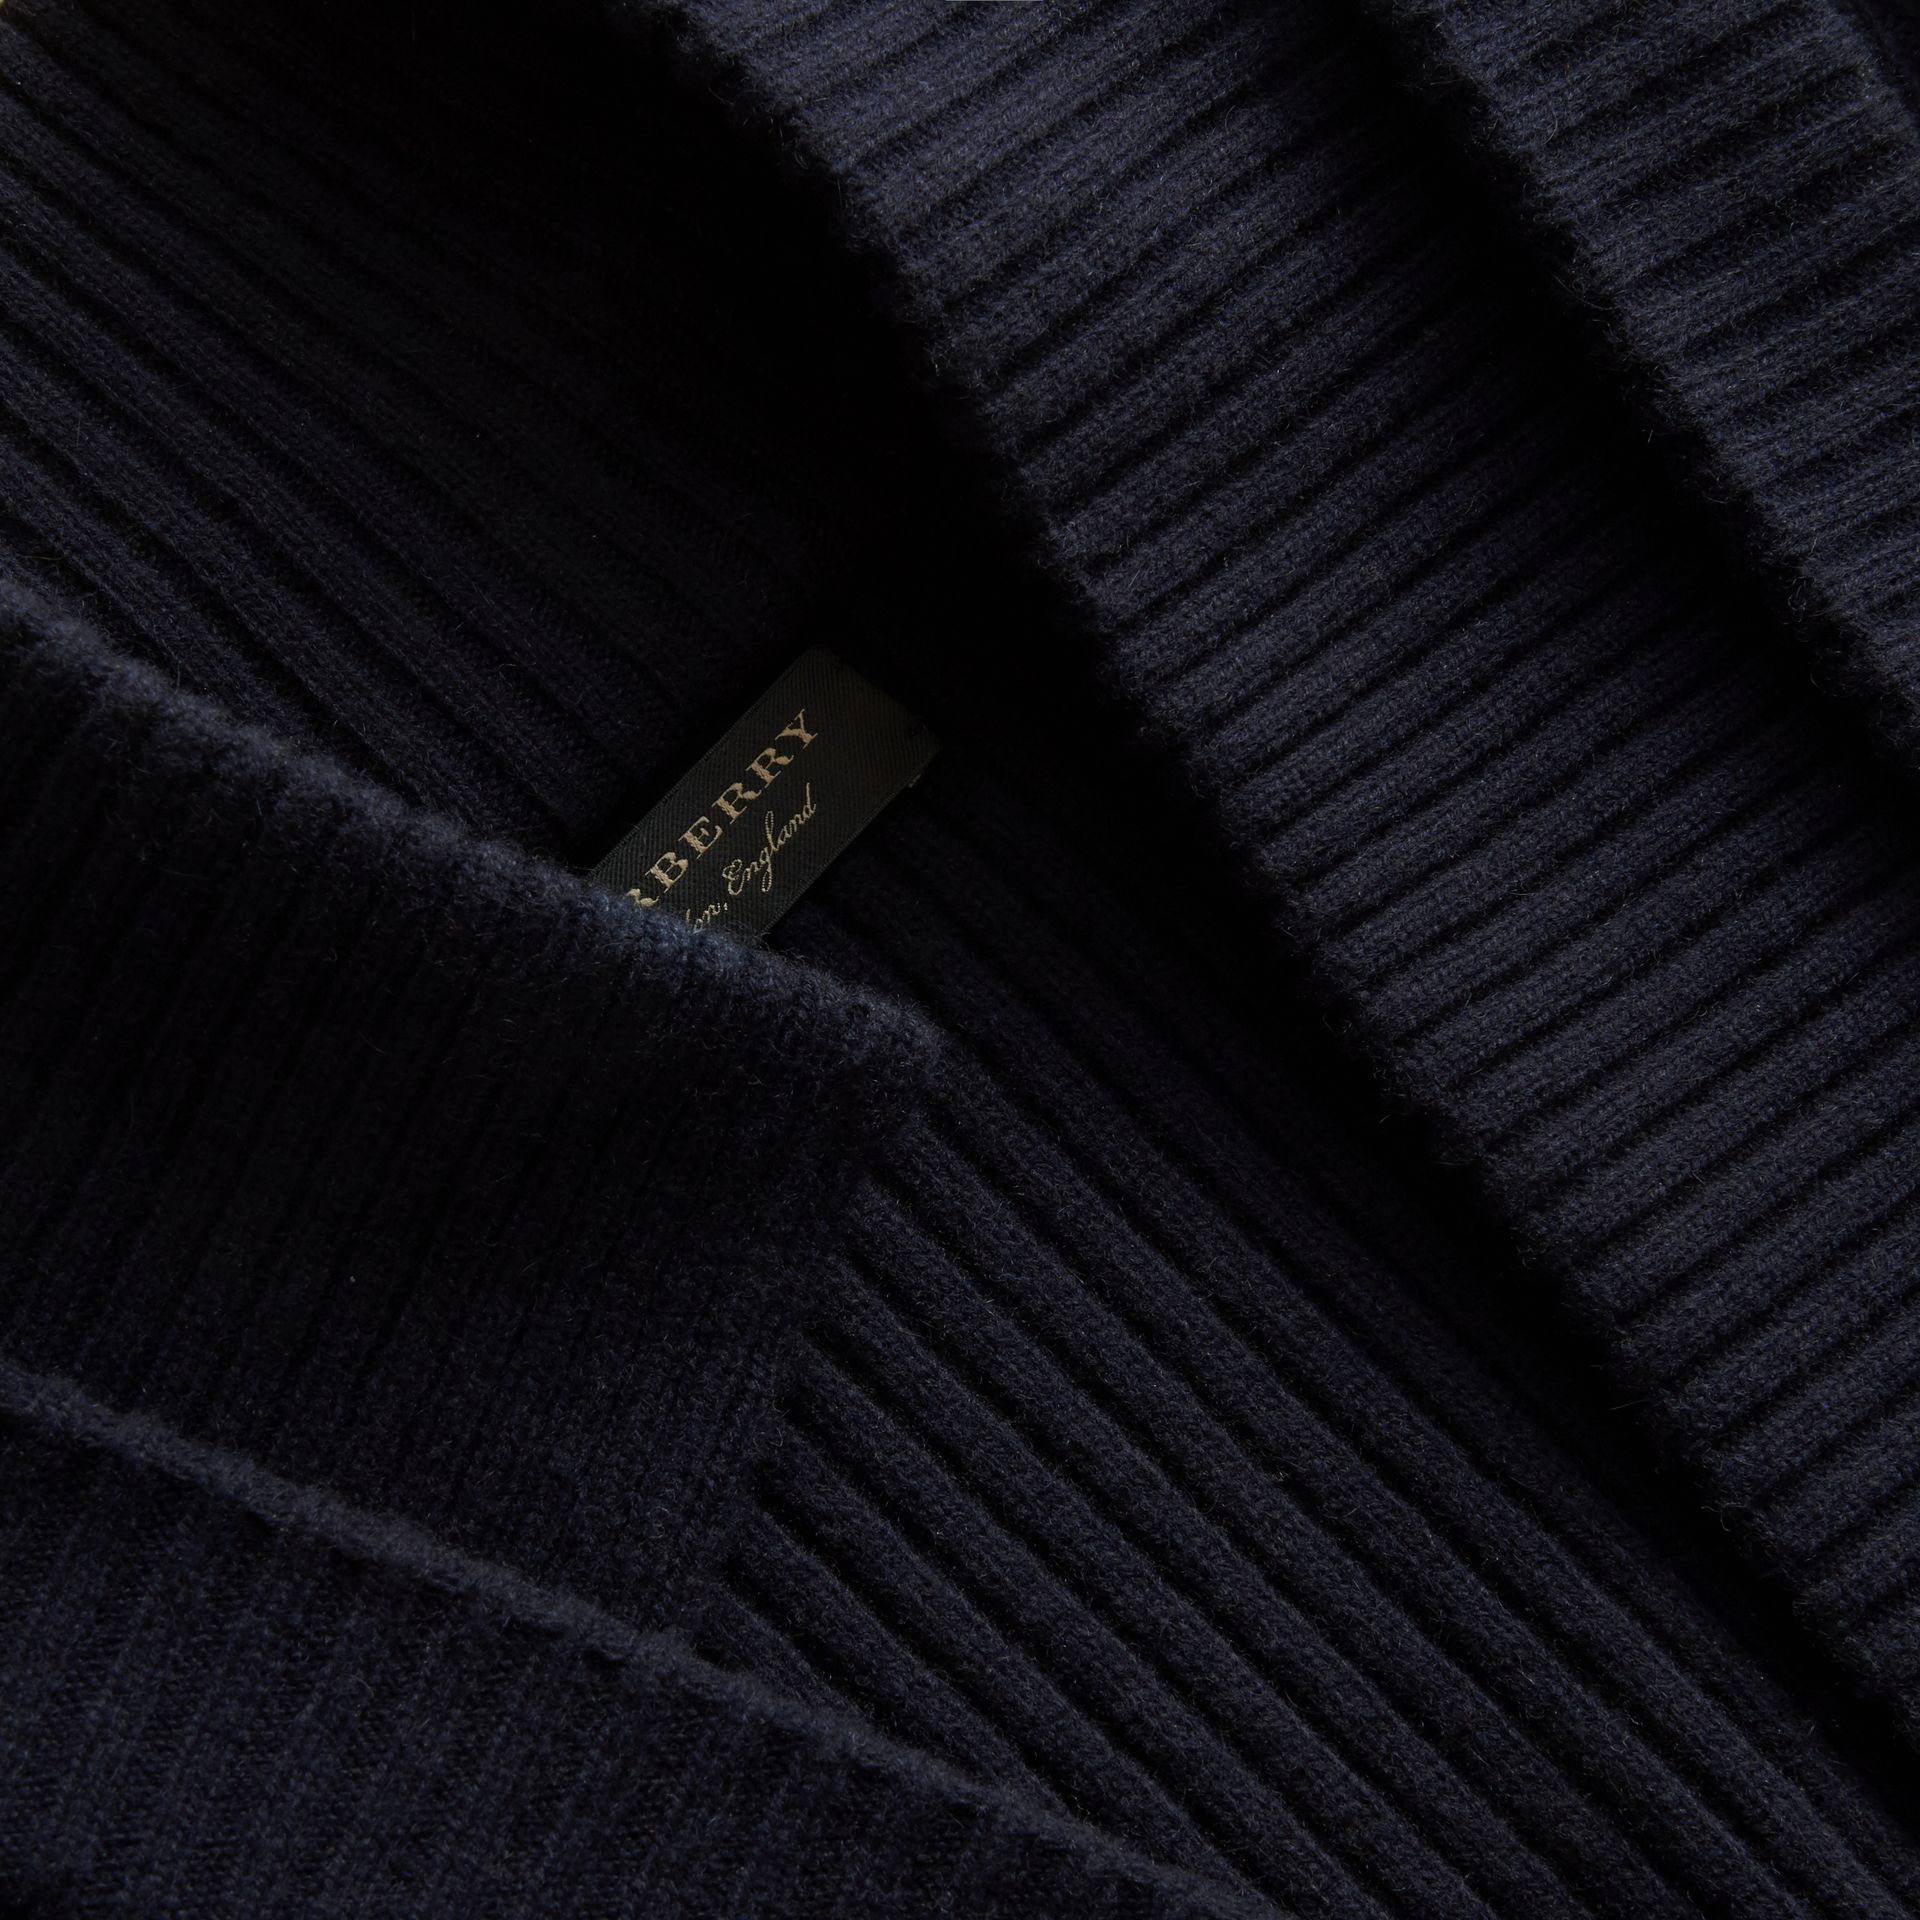 Knitted Wool Cashmere Military-inspired Jacket in Navy - Women | Burberry - gallery image 2